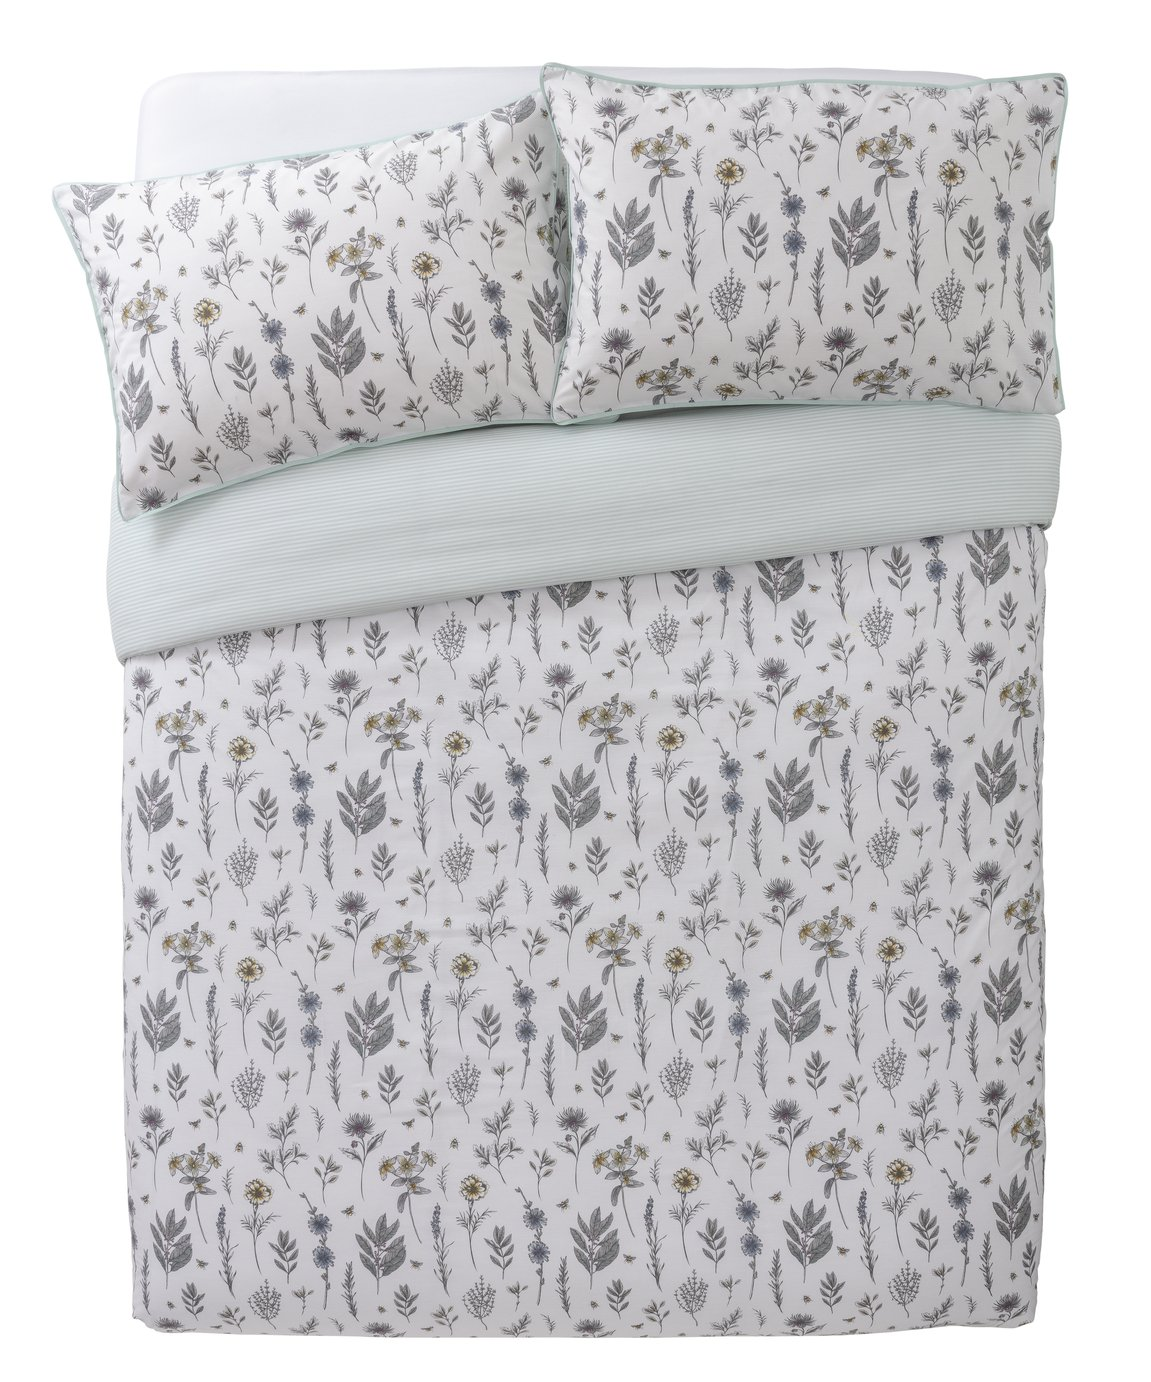 Argos Home Outline Floral Printed Bedding Set - Kingsize